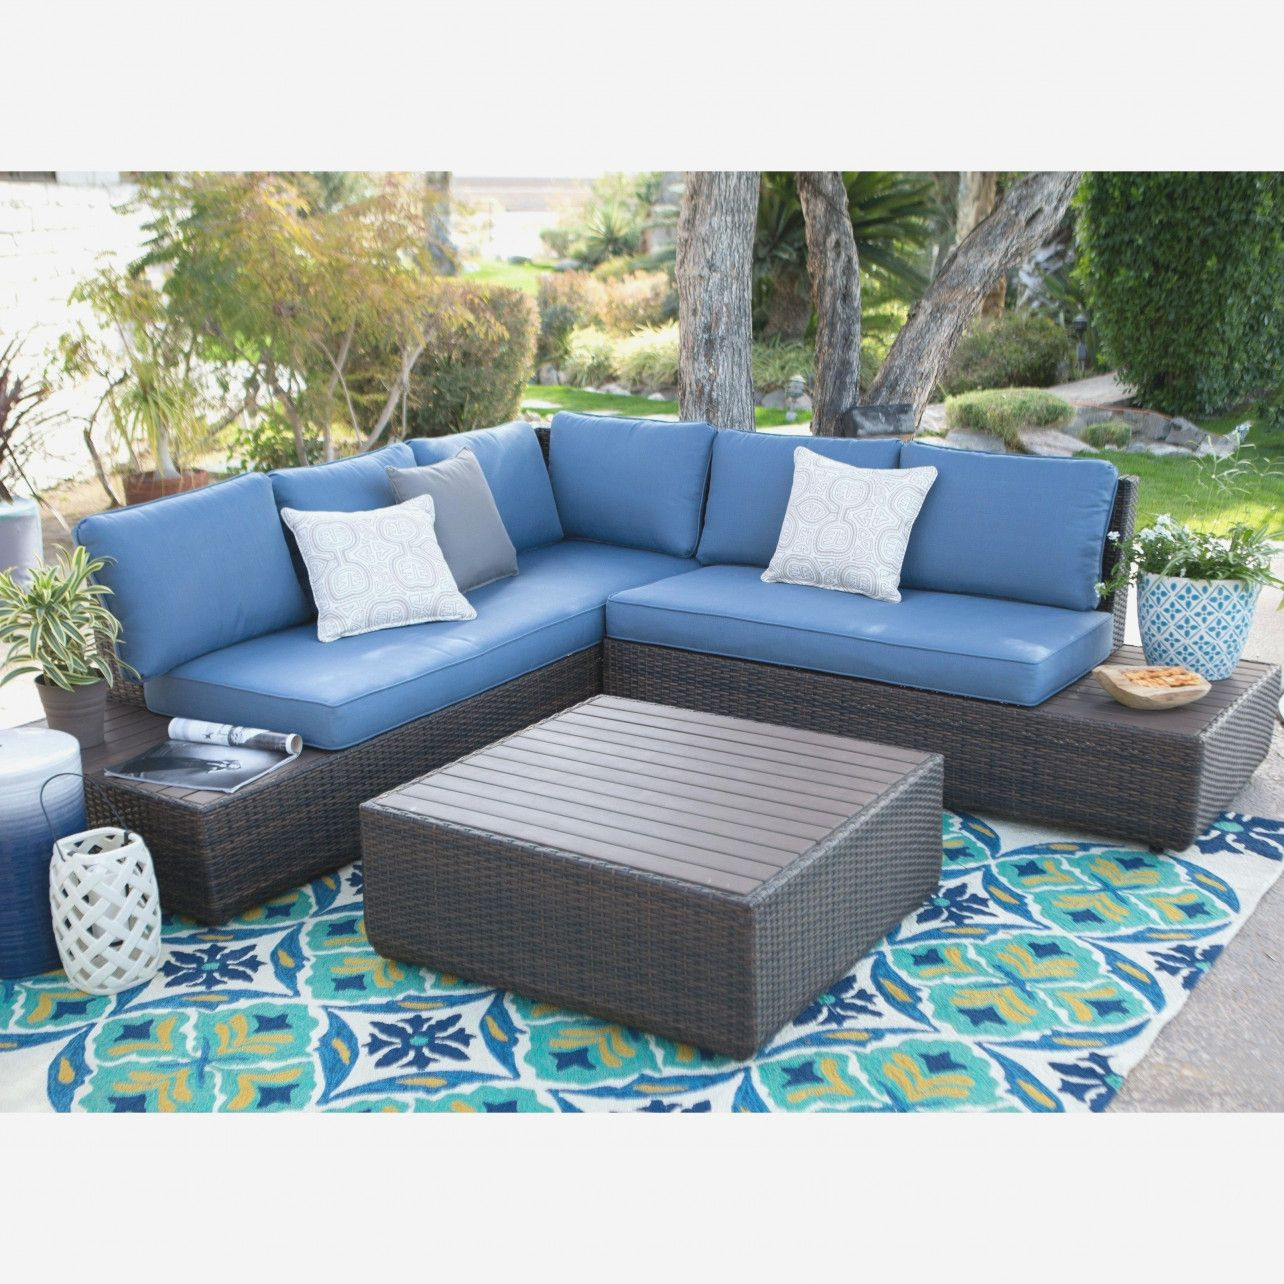 20 Lovely Fred Meyer Coffee Table 2020 Outdoor Sectional Sofa Wicker Loveseat Outdoor Furniture Cushions